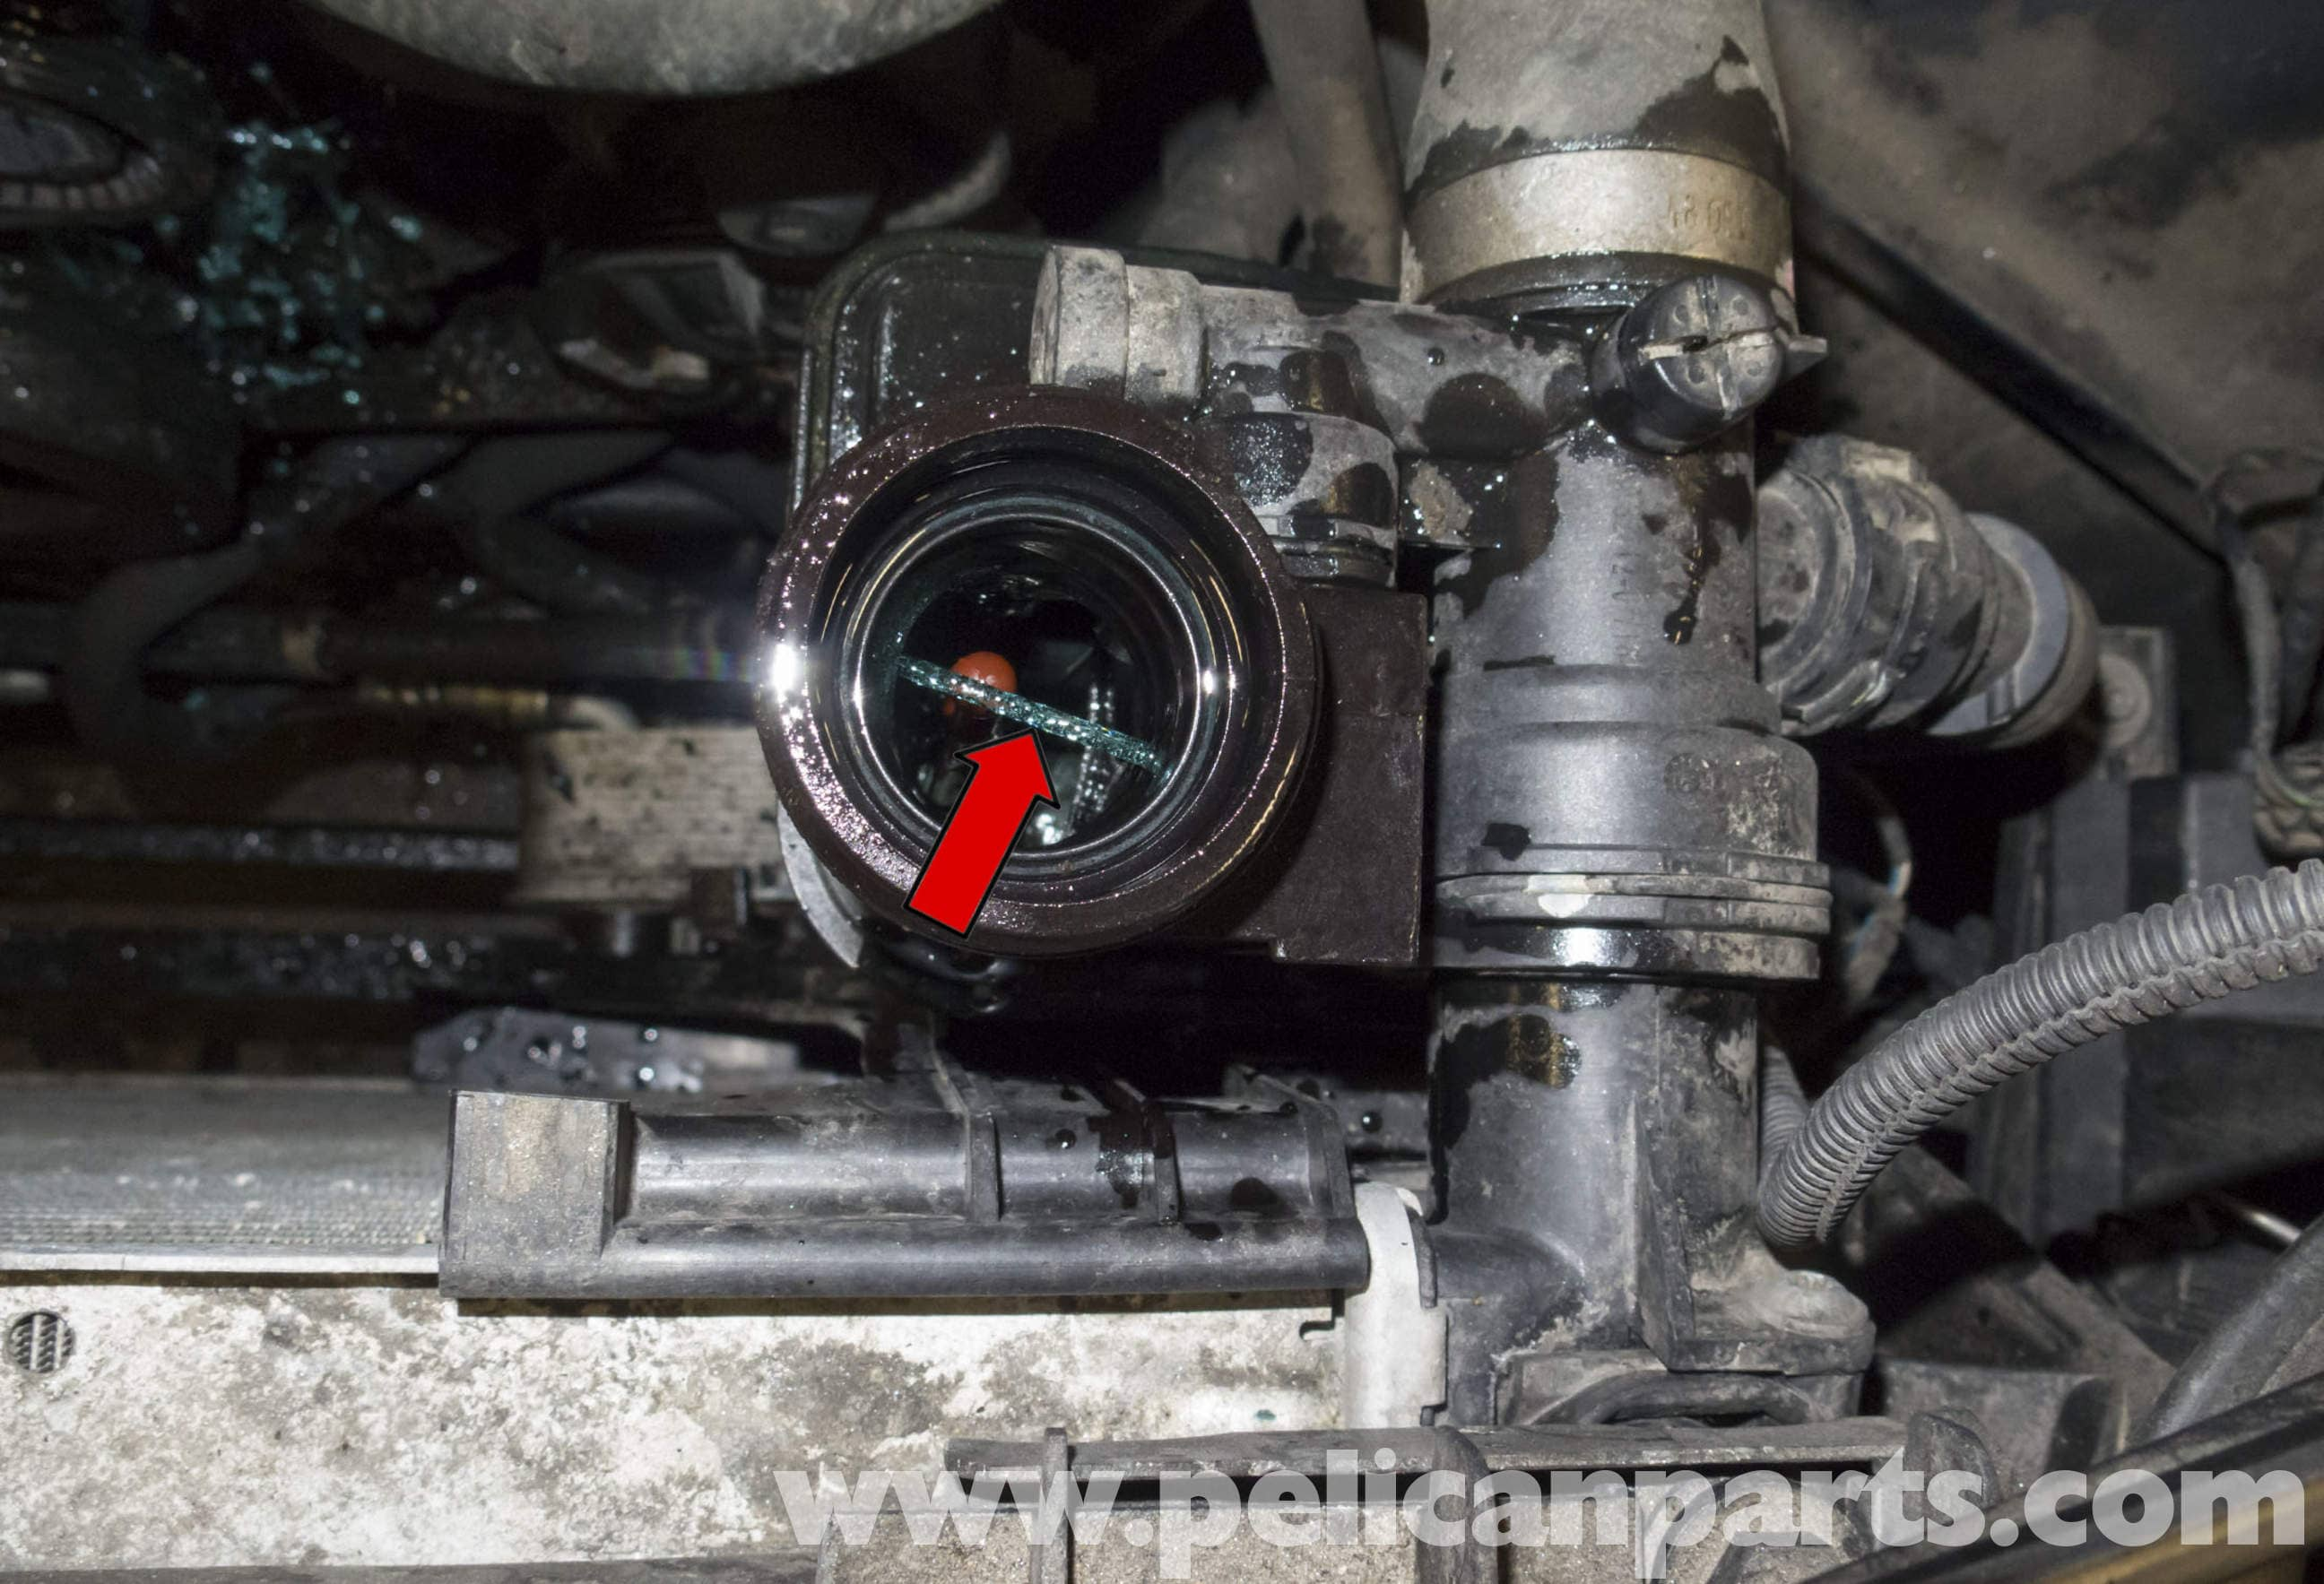 Pelican Technical Article - BMW-X3 - N52 Engine Thermostat Replacement